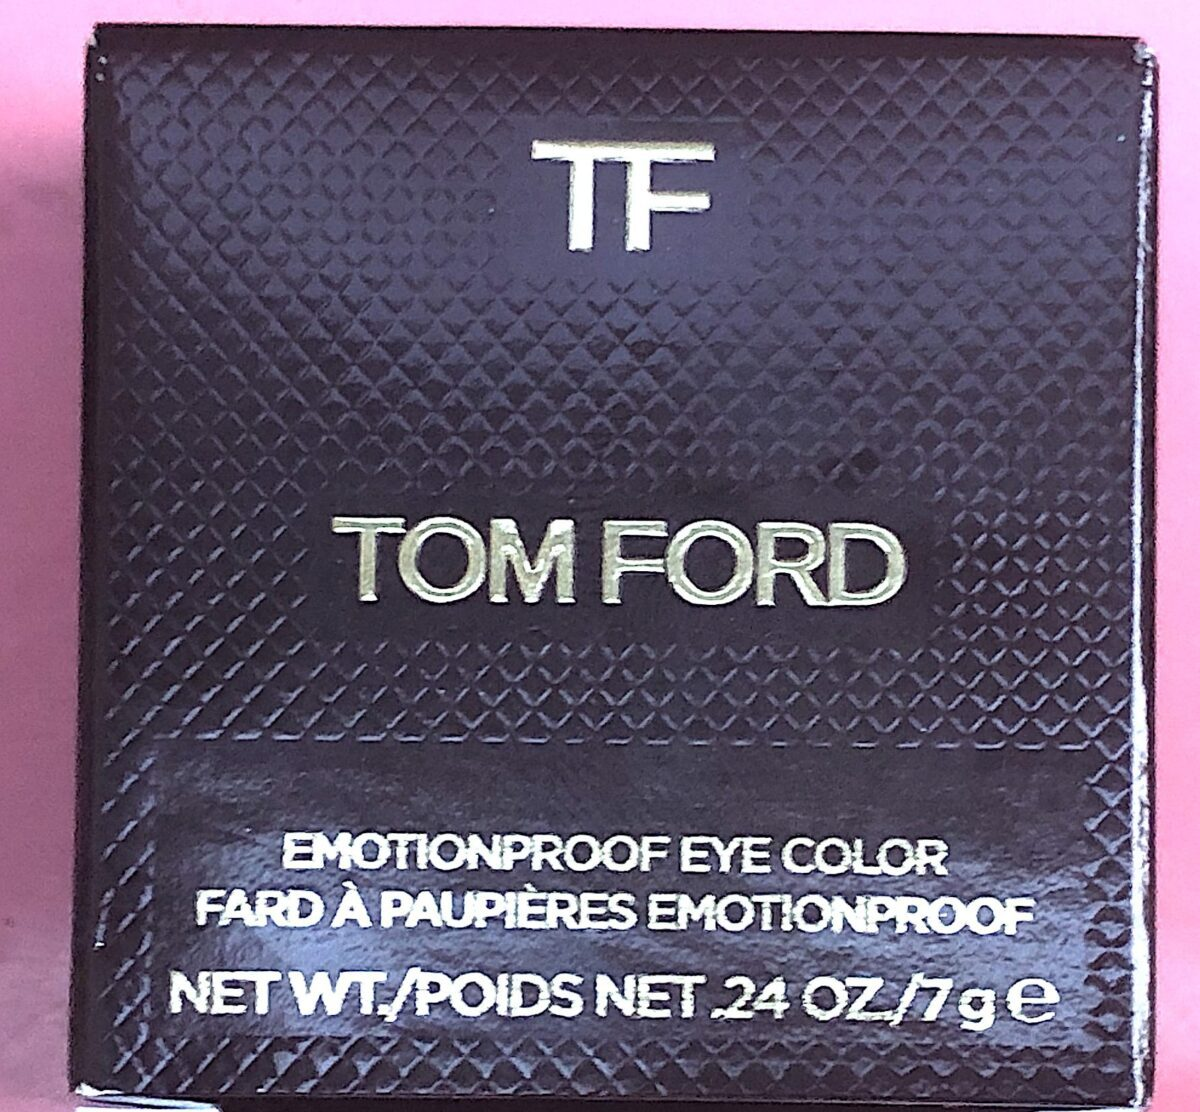 TOM FORD EMOTIONLESS EYE COLOR PACKAGING OUTER BOX